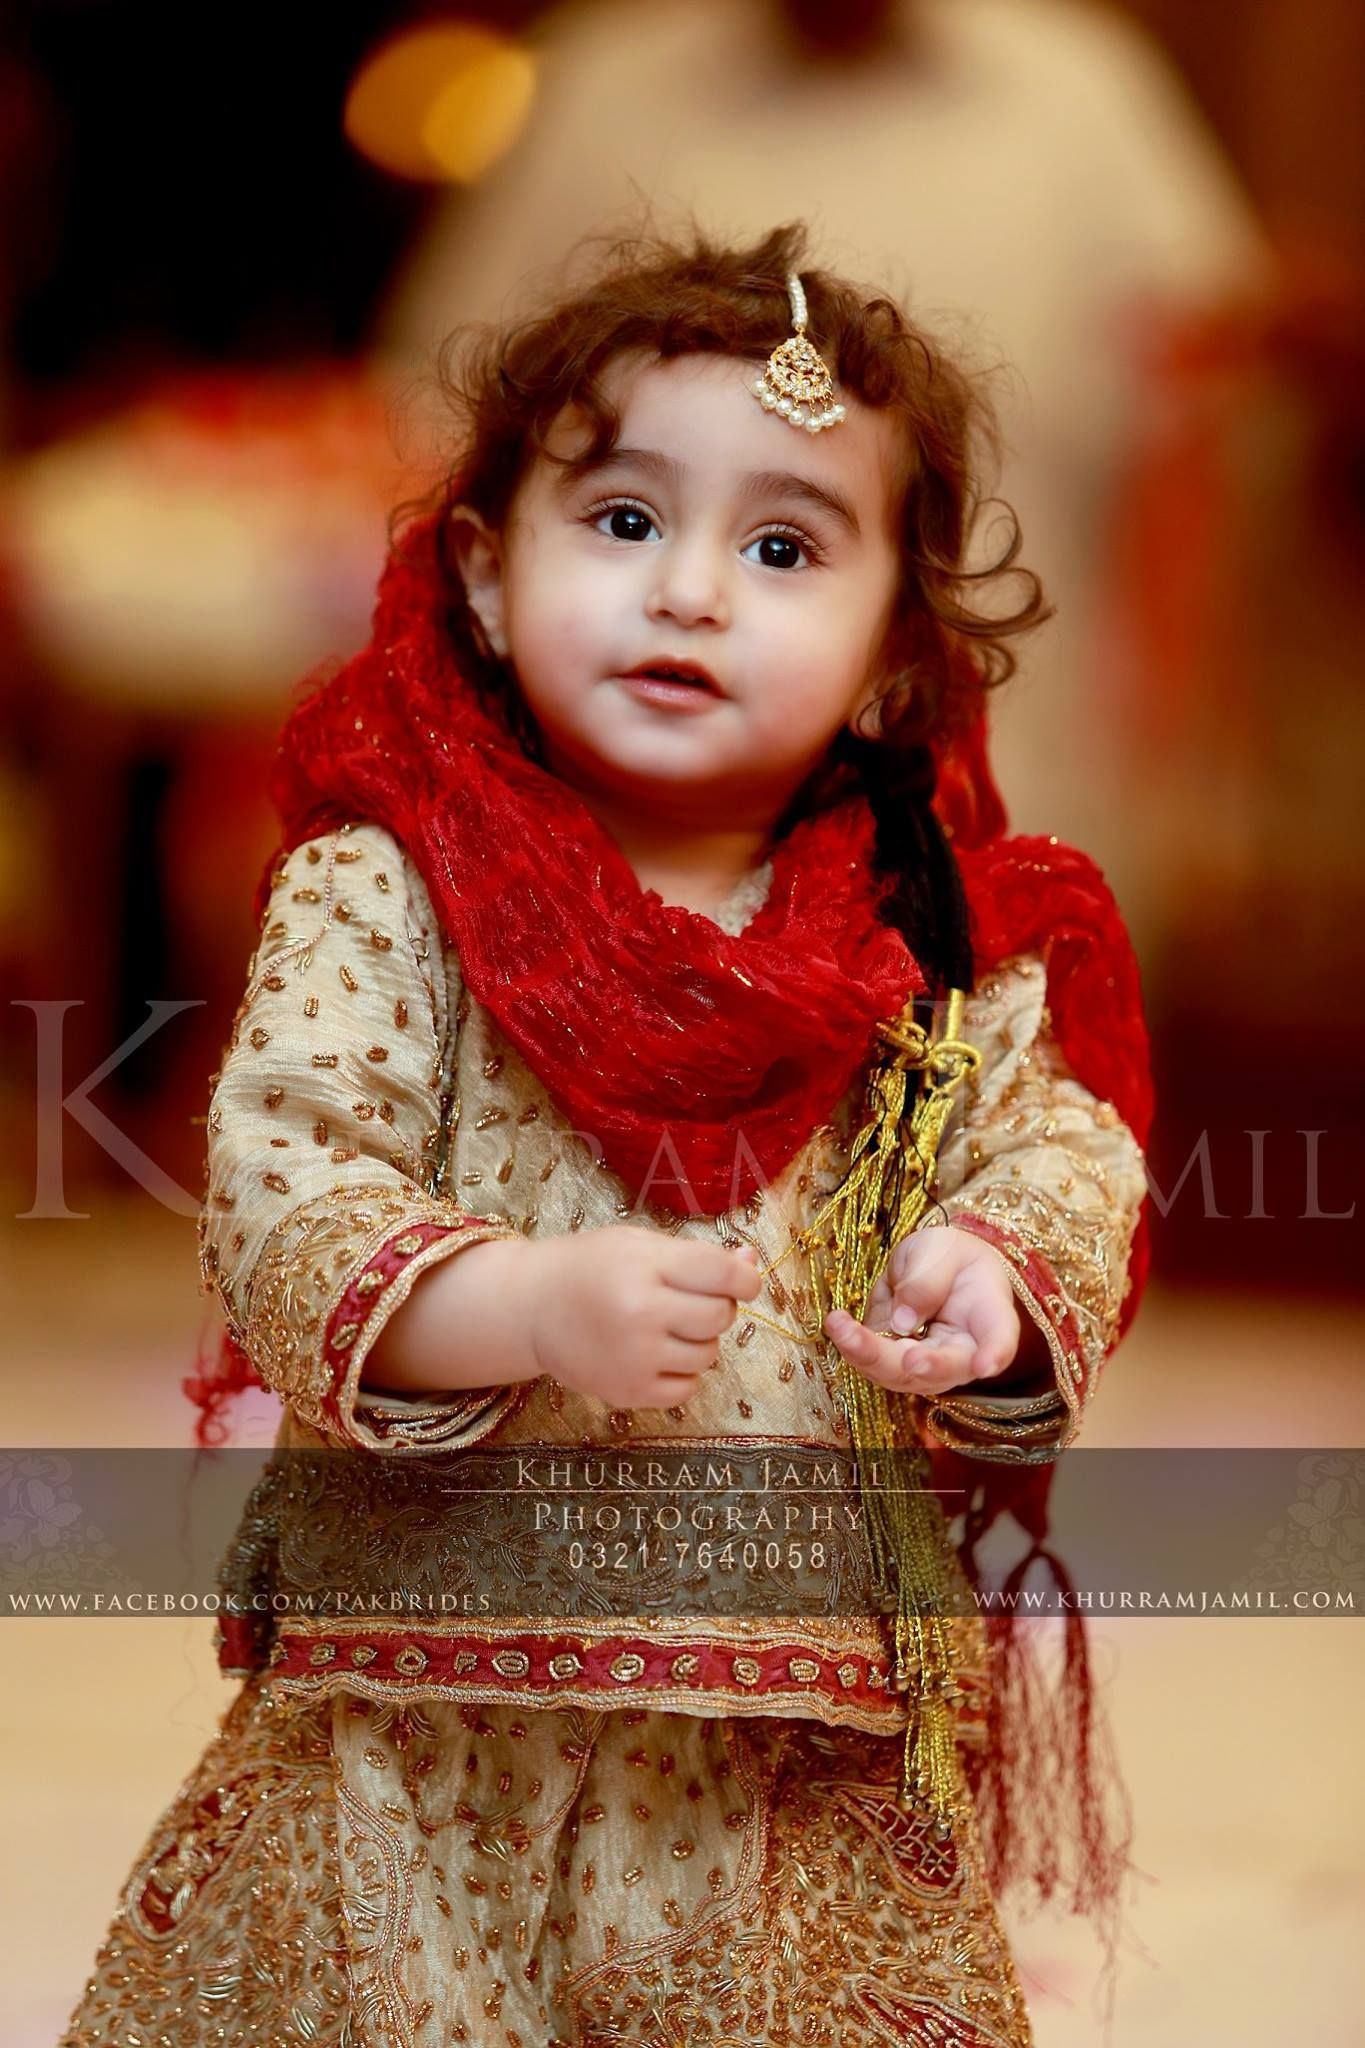 So Pretty, Photography By Khurram Jamil  Babies -4604